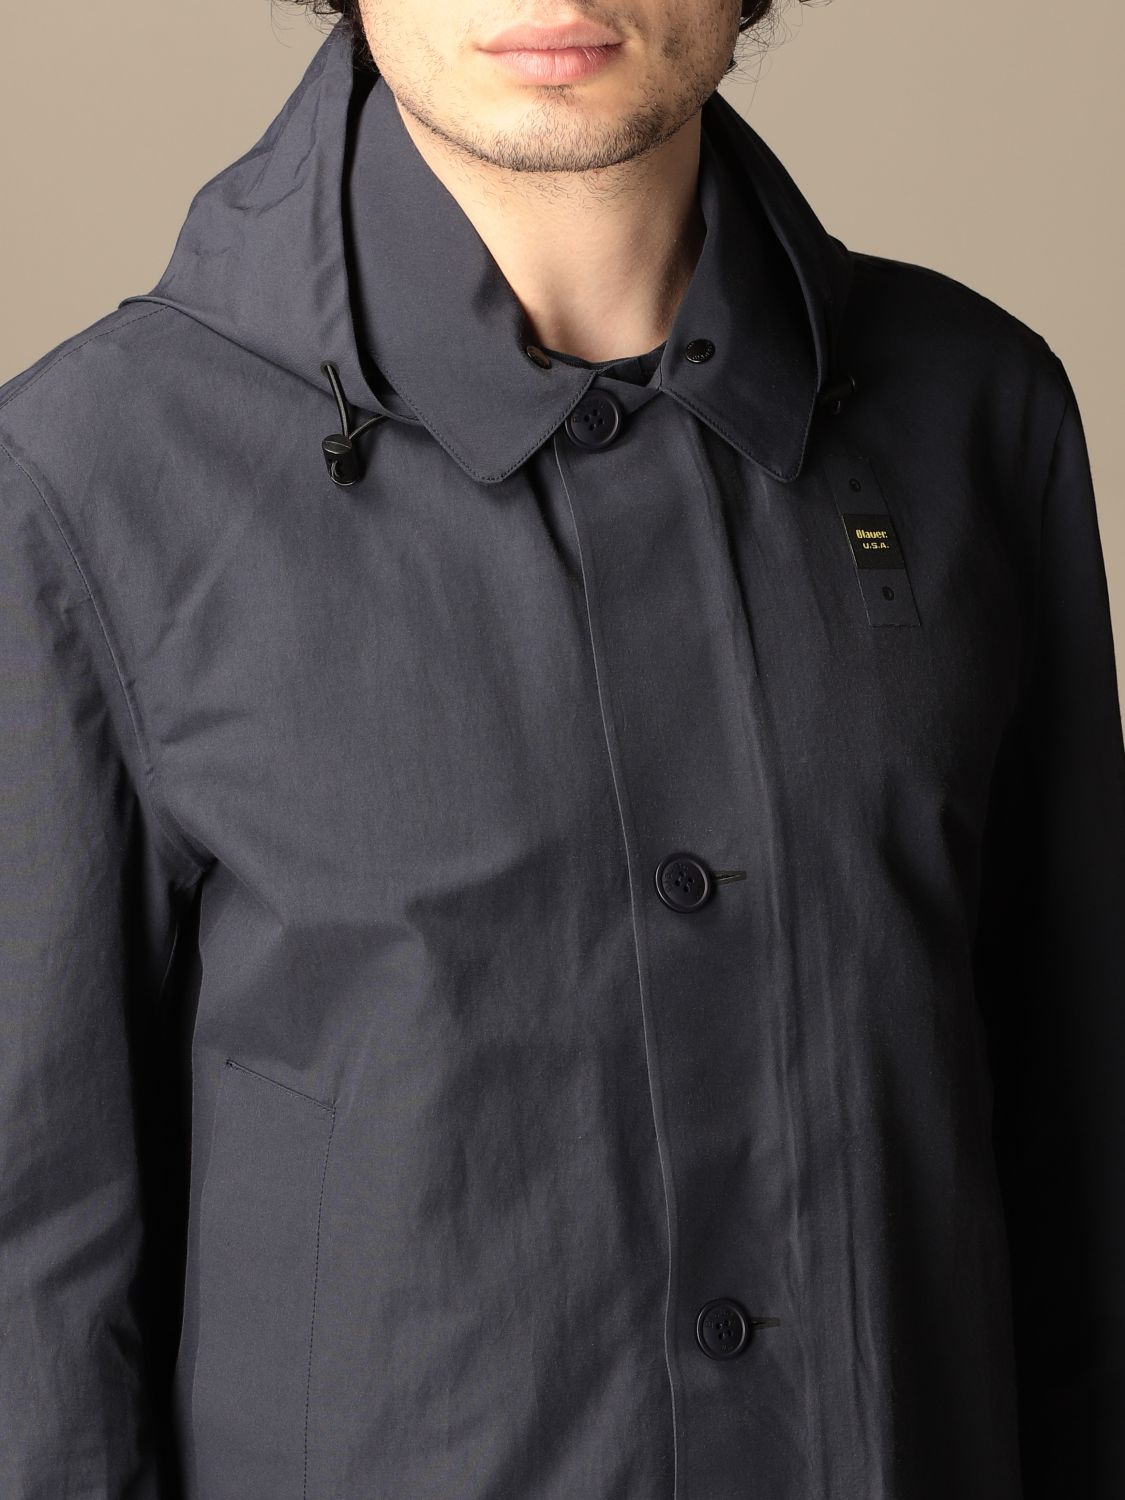 Trench coat Blauer: Trench coat men Blauer sapphire 4